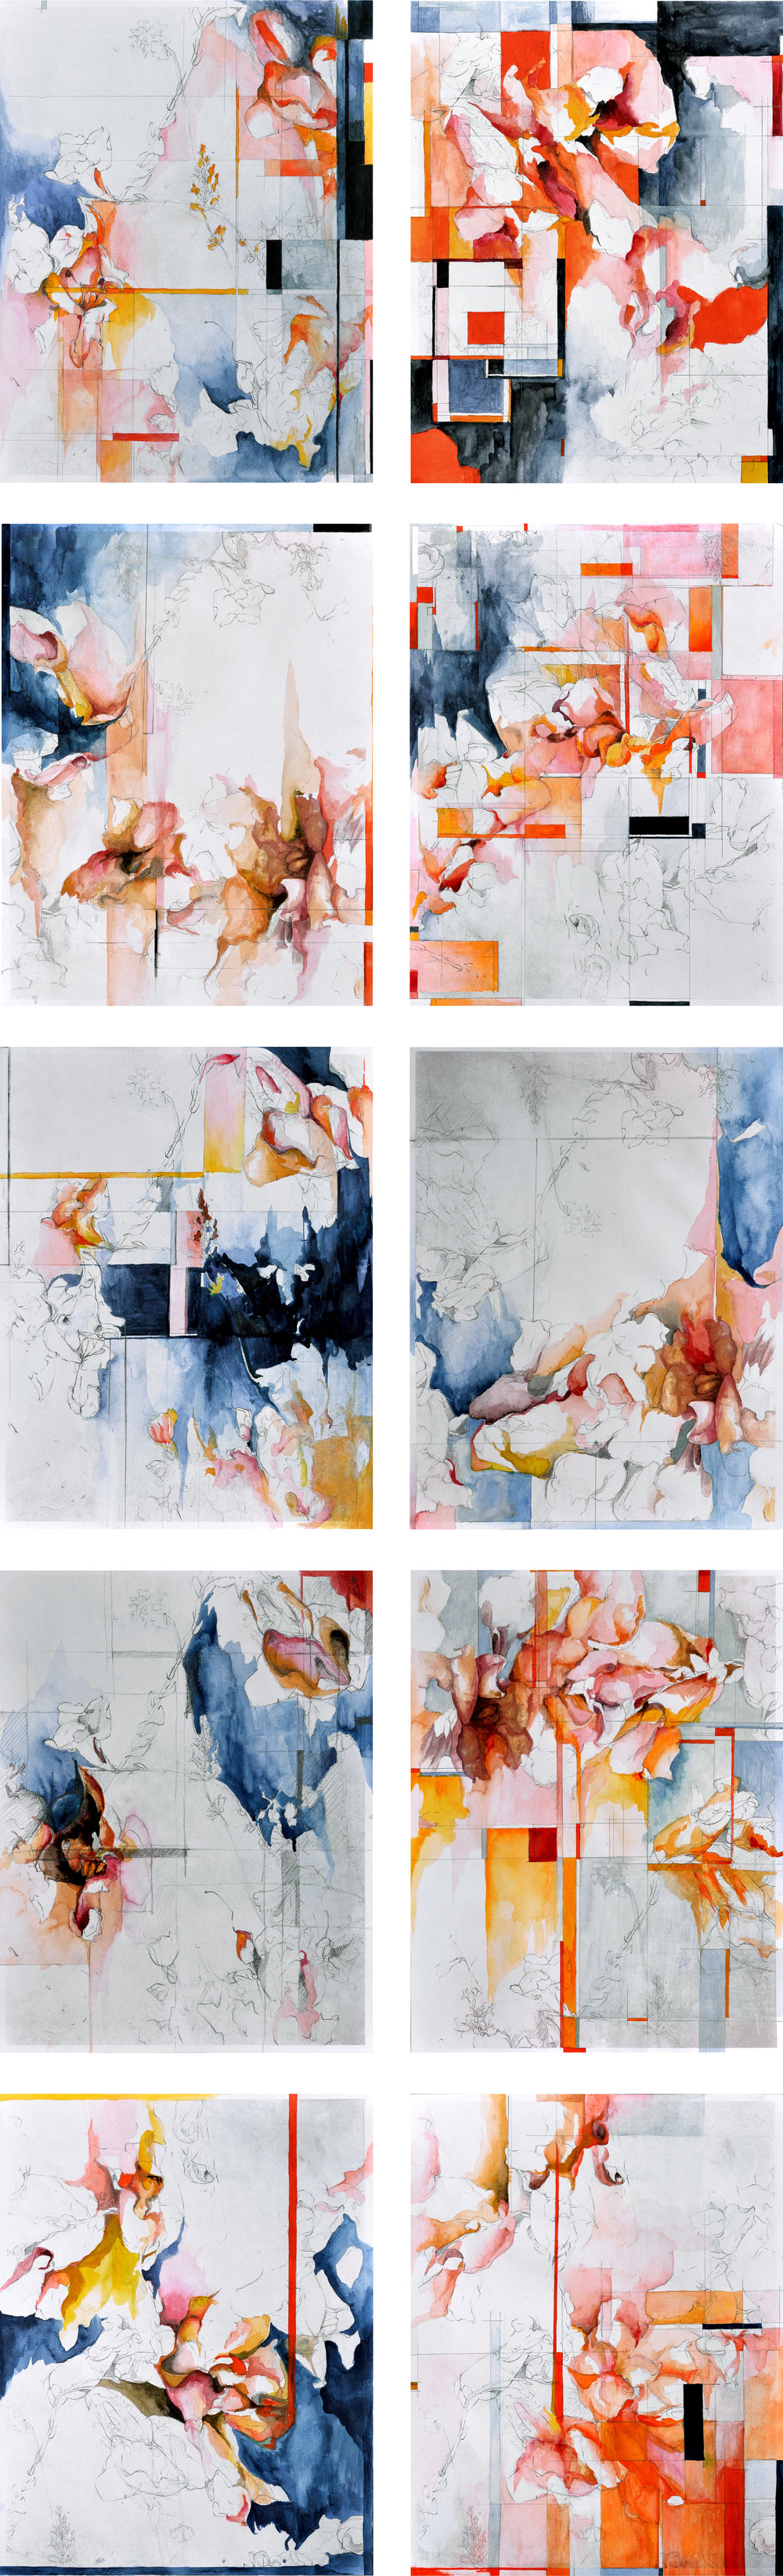 """The Last Judgement No. 1, 2, 3, 4, 5, 6, 7, 9, 10, 11 , pencil and watercolor on partial prints of pencil drawing, 8.5"""" x 11"""" (2018)"""